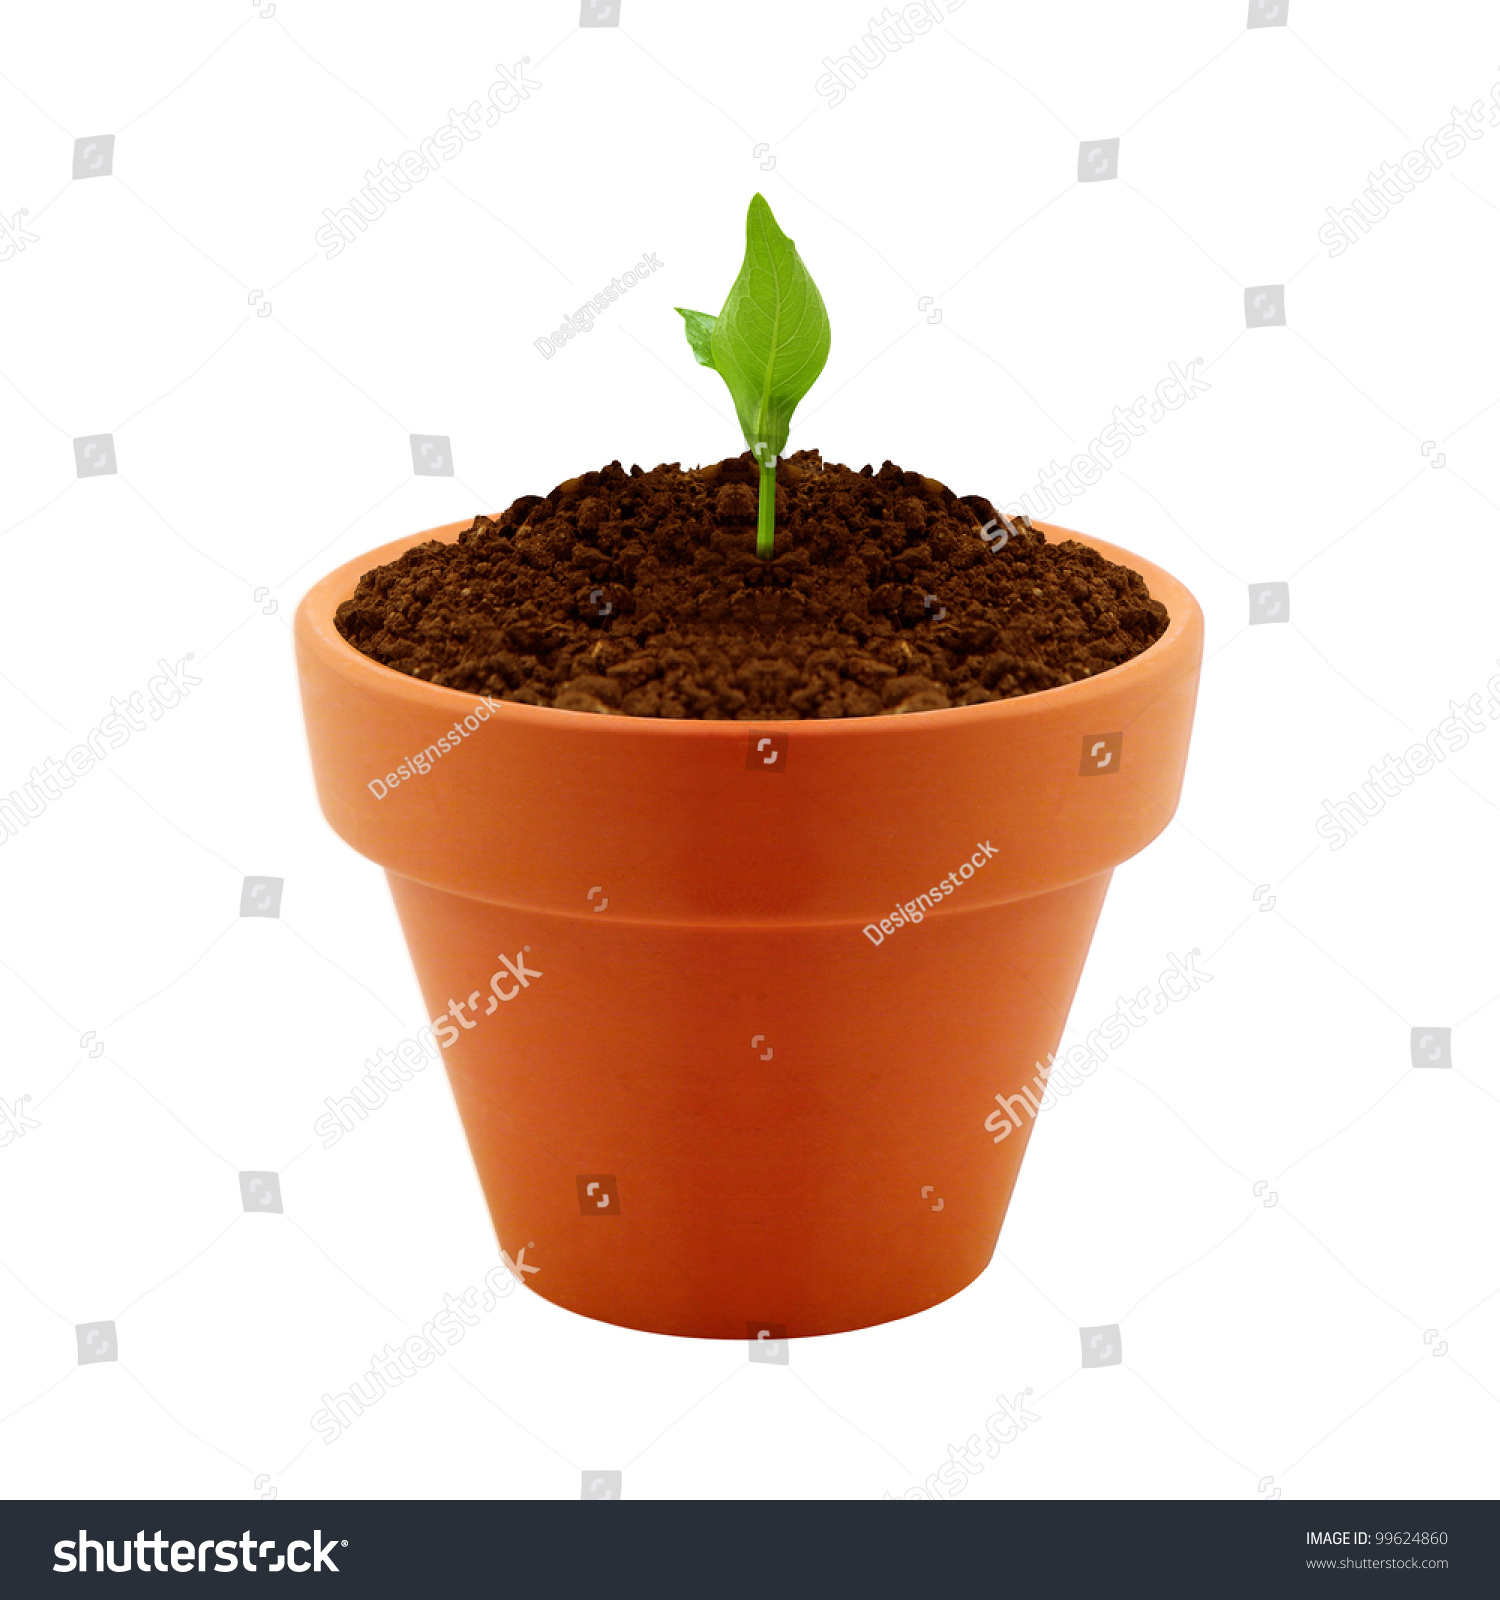 Small plant growing clay pot stock photo 99624860 What are miniature plants grown in pots called